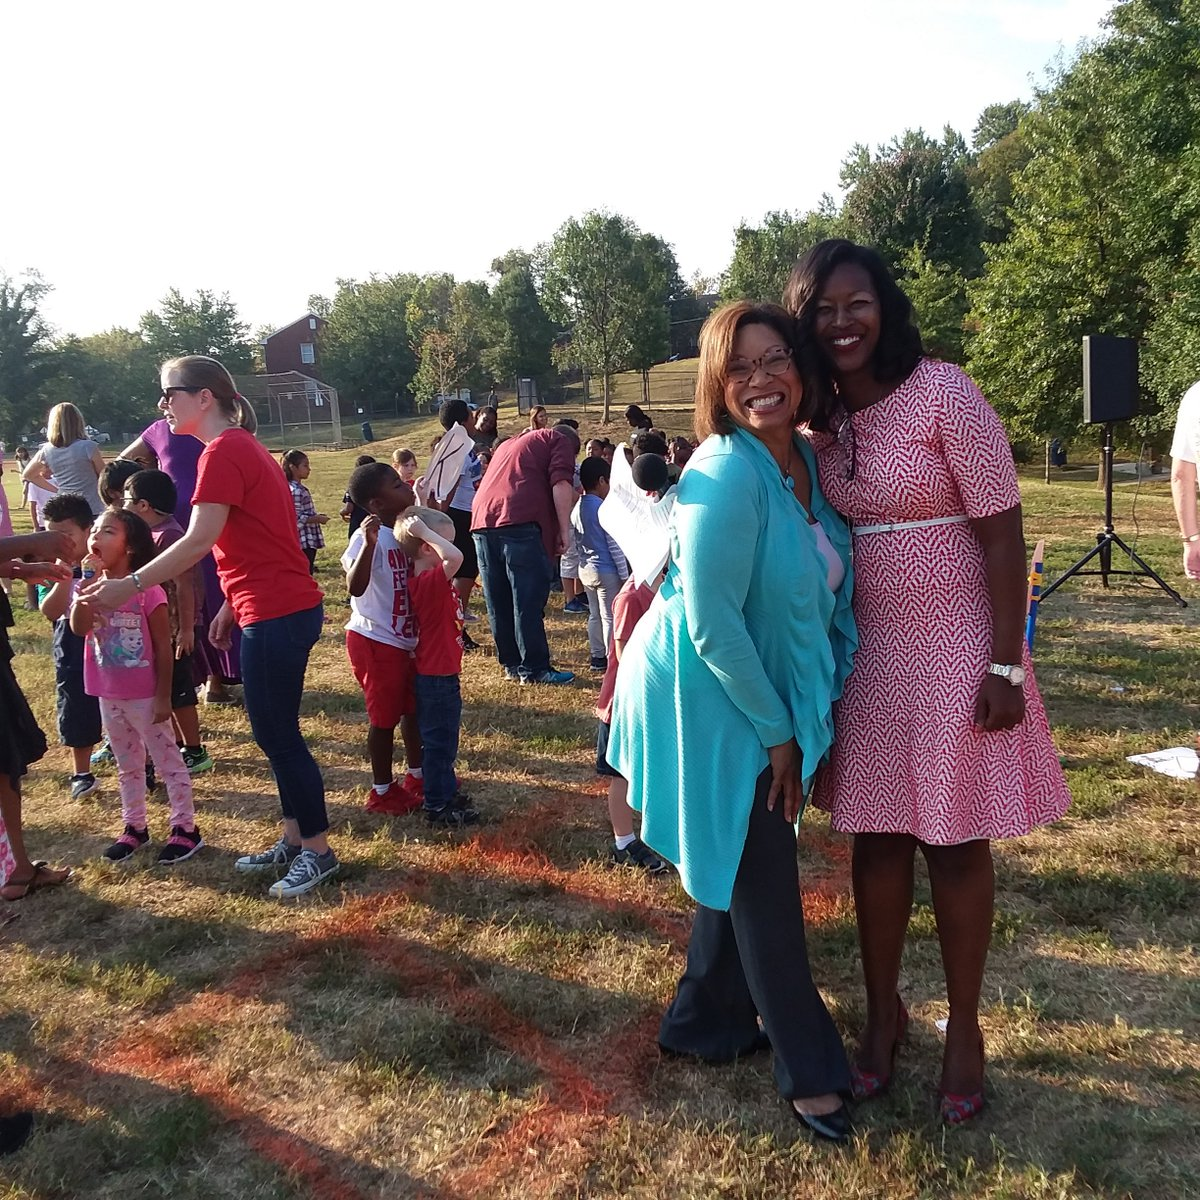 Thanks <a target='_blank' href='http://twitter.com/APSVirginia'>@APSVirginia</a> for braving the heat on <a target='_blank' href='http://search.twitter.com/search?q=APSWalk2School'><a target='_blank' href='https://twitter.com/hashtag/APSWalk2School?src=hash'>#APSWalk2School</a></a> Day. Shout-out to VIP guests who joined students <a target='_blank' href='http://twitter.com/APSDrew'>@APSDrew</a> for supporting students in every way, every day-<a target='_blank' href='http://twitter.com/Monique4APS'>@Monique4APS</a> <a target='_blank' href='http://twitter.com/ArlingtonVA'>@ArlingtonVA</a> <a target='_blank' href='http://twitter.com/ArlingtonDES'>@ArlingtonDES</a> <a target='_blank' href='http://twitter.com/ATPcommutes'>@ATPcommutes</a> <a target='_blank' href='http://twitter.com/WalkArlington'>@WalkArlington</a> <a target='_blank' href='http://twitter.com/BikeArlington'>@BikeArlington</a> <a target='_blank' href='http://twitter.com/ArlingtonVaPD'>@ArlingtonVaPD</a> <a target='_blank' href='http://twitter.com/APSFacilities'>@APSFacilities</a> <a target='_blank' href='https://t.co/niPOUgug8O'>https://t.co/niPOUgug8O</a>